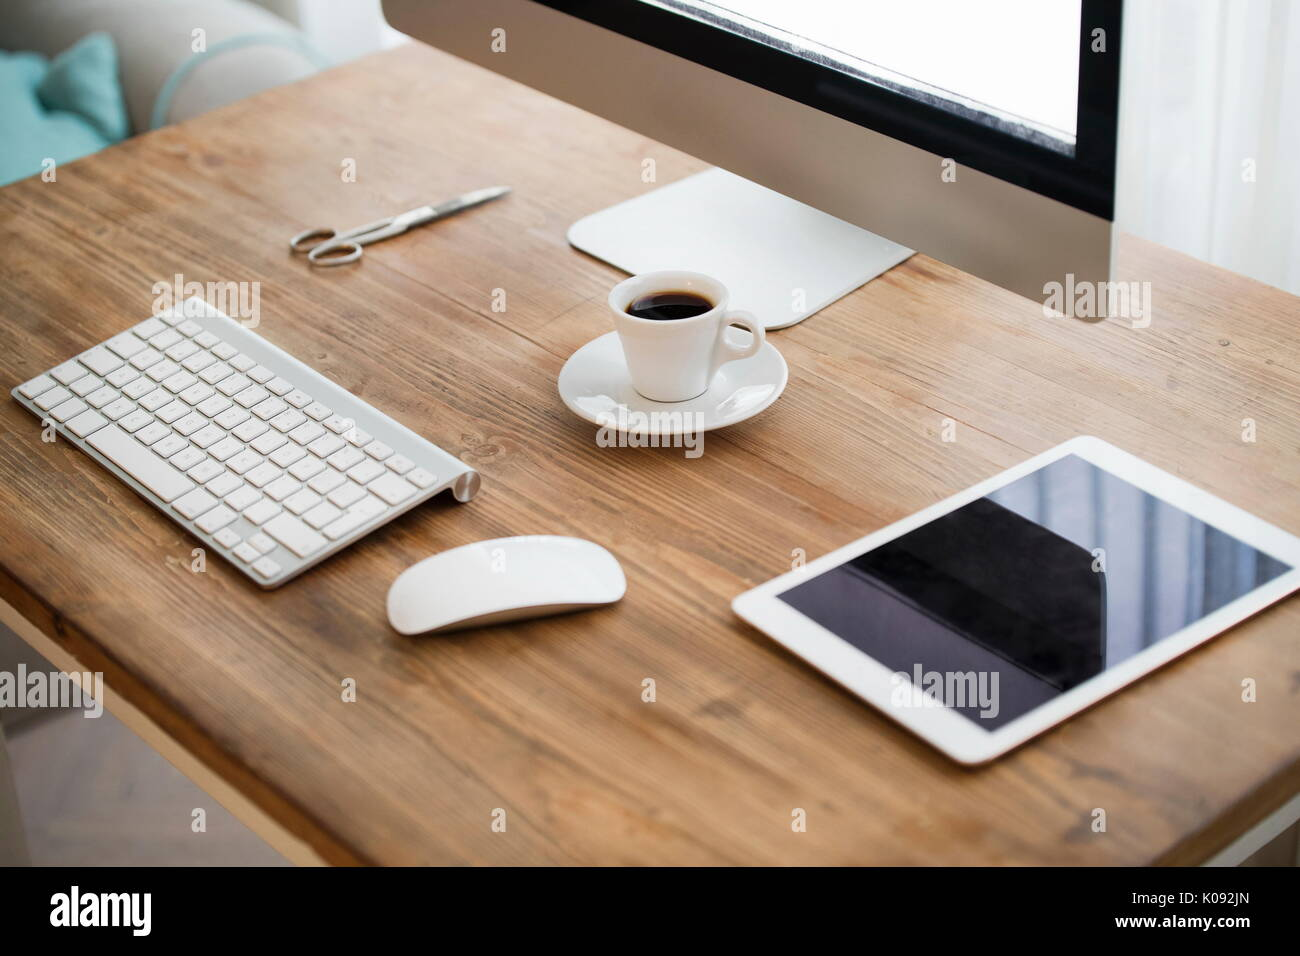 Picture of computer, scissors and camera on working desk - Stock Image